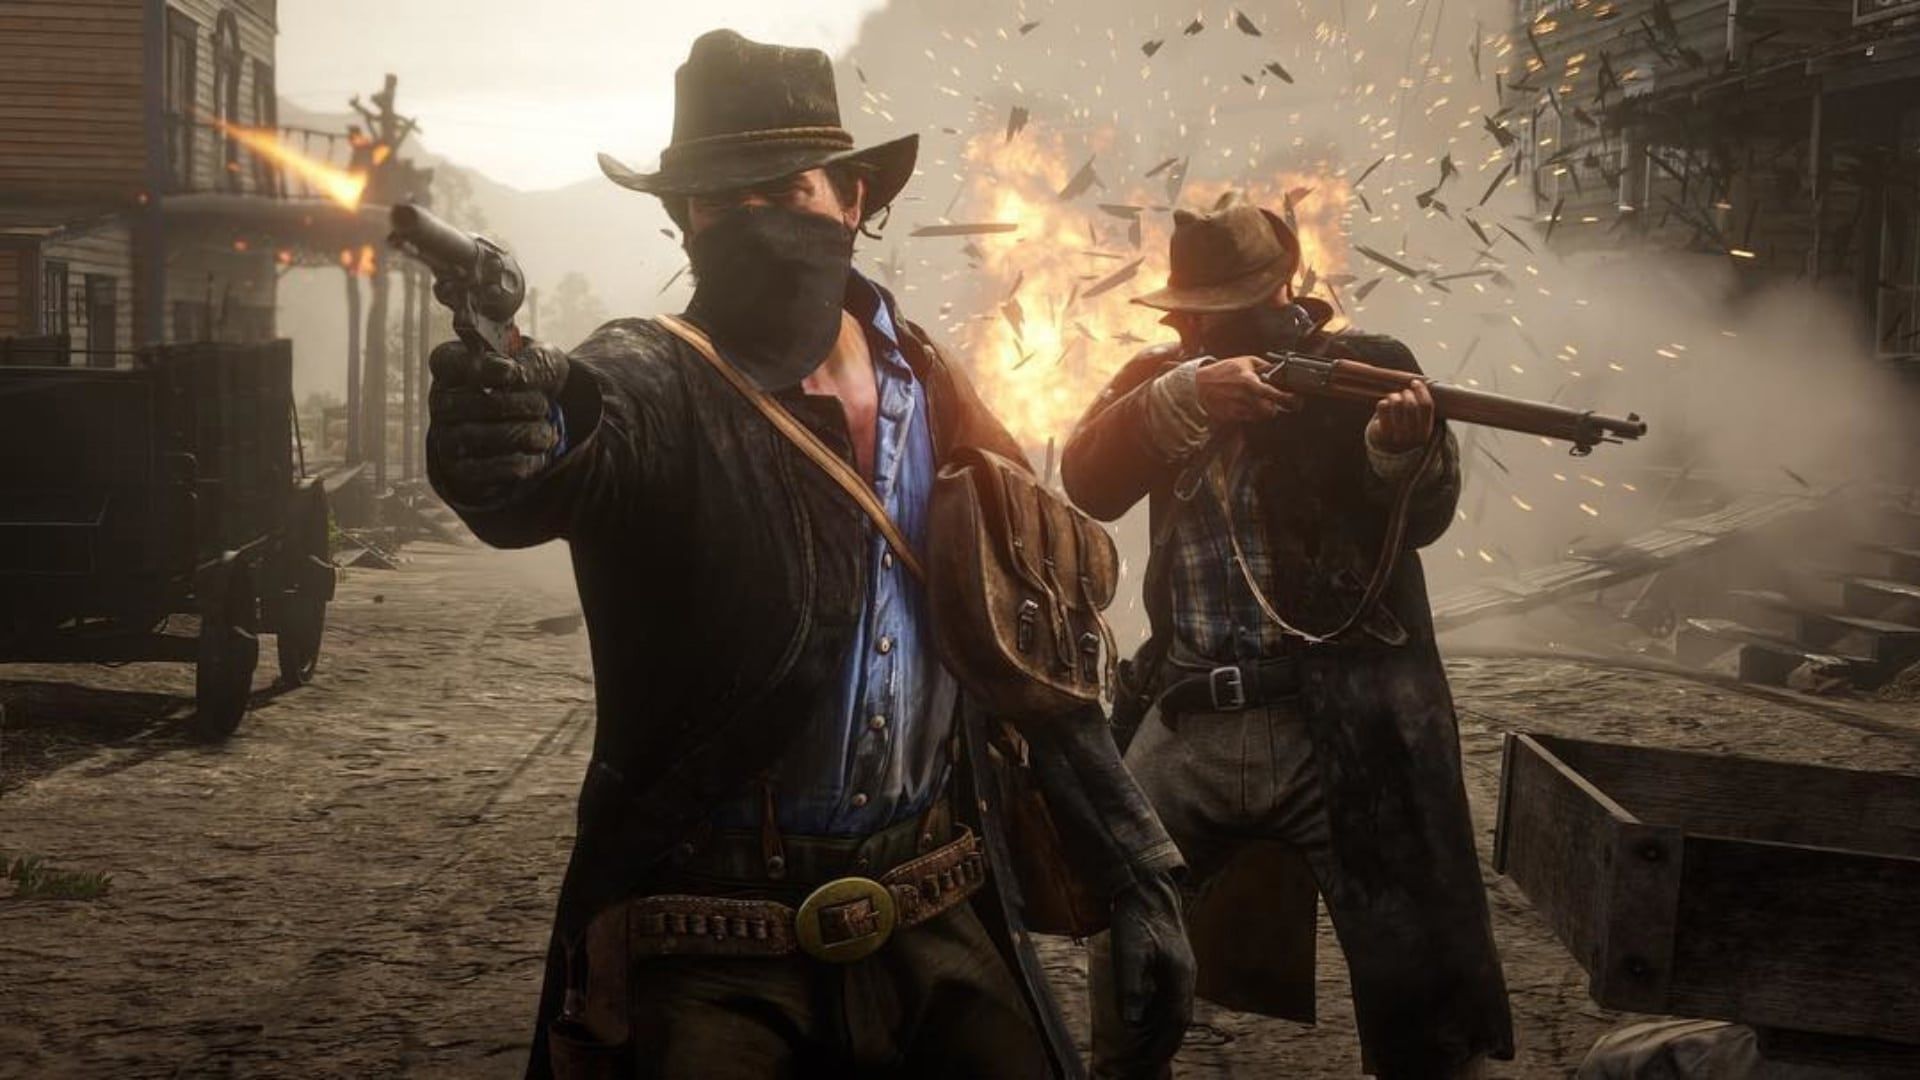 Missions in Redemption 2